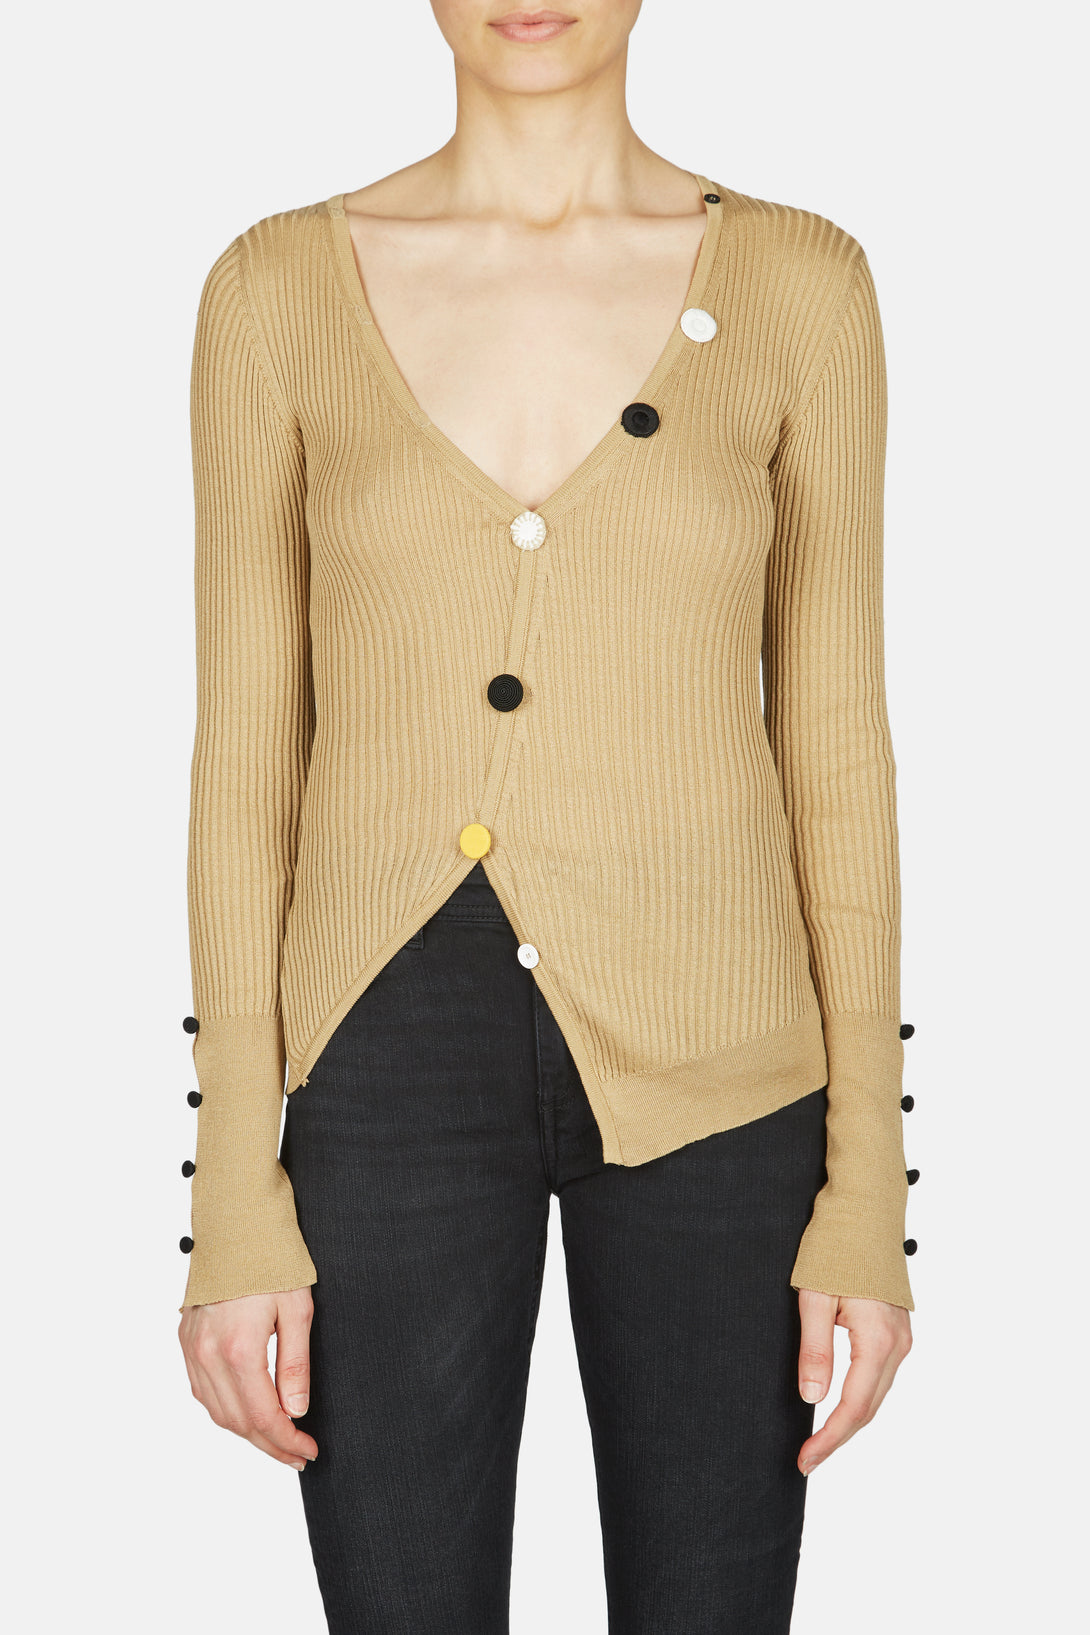 Tordu Long Sleeve Cardigan with Multi Tone Buttons - Brown